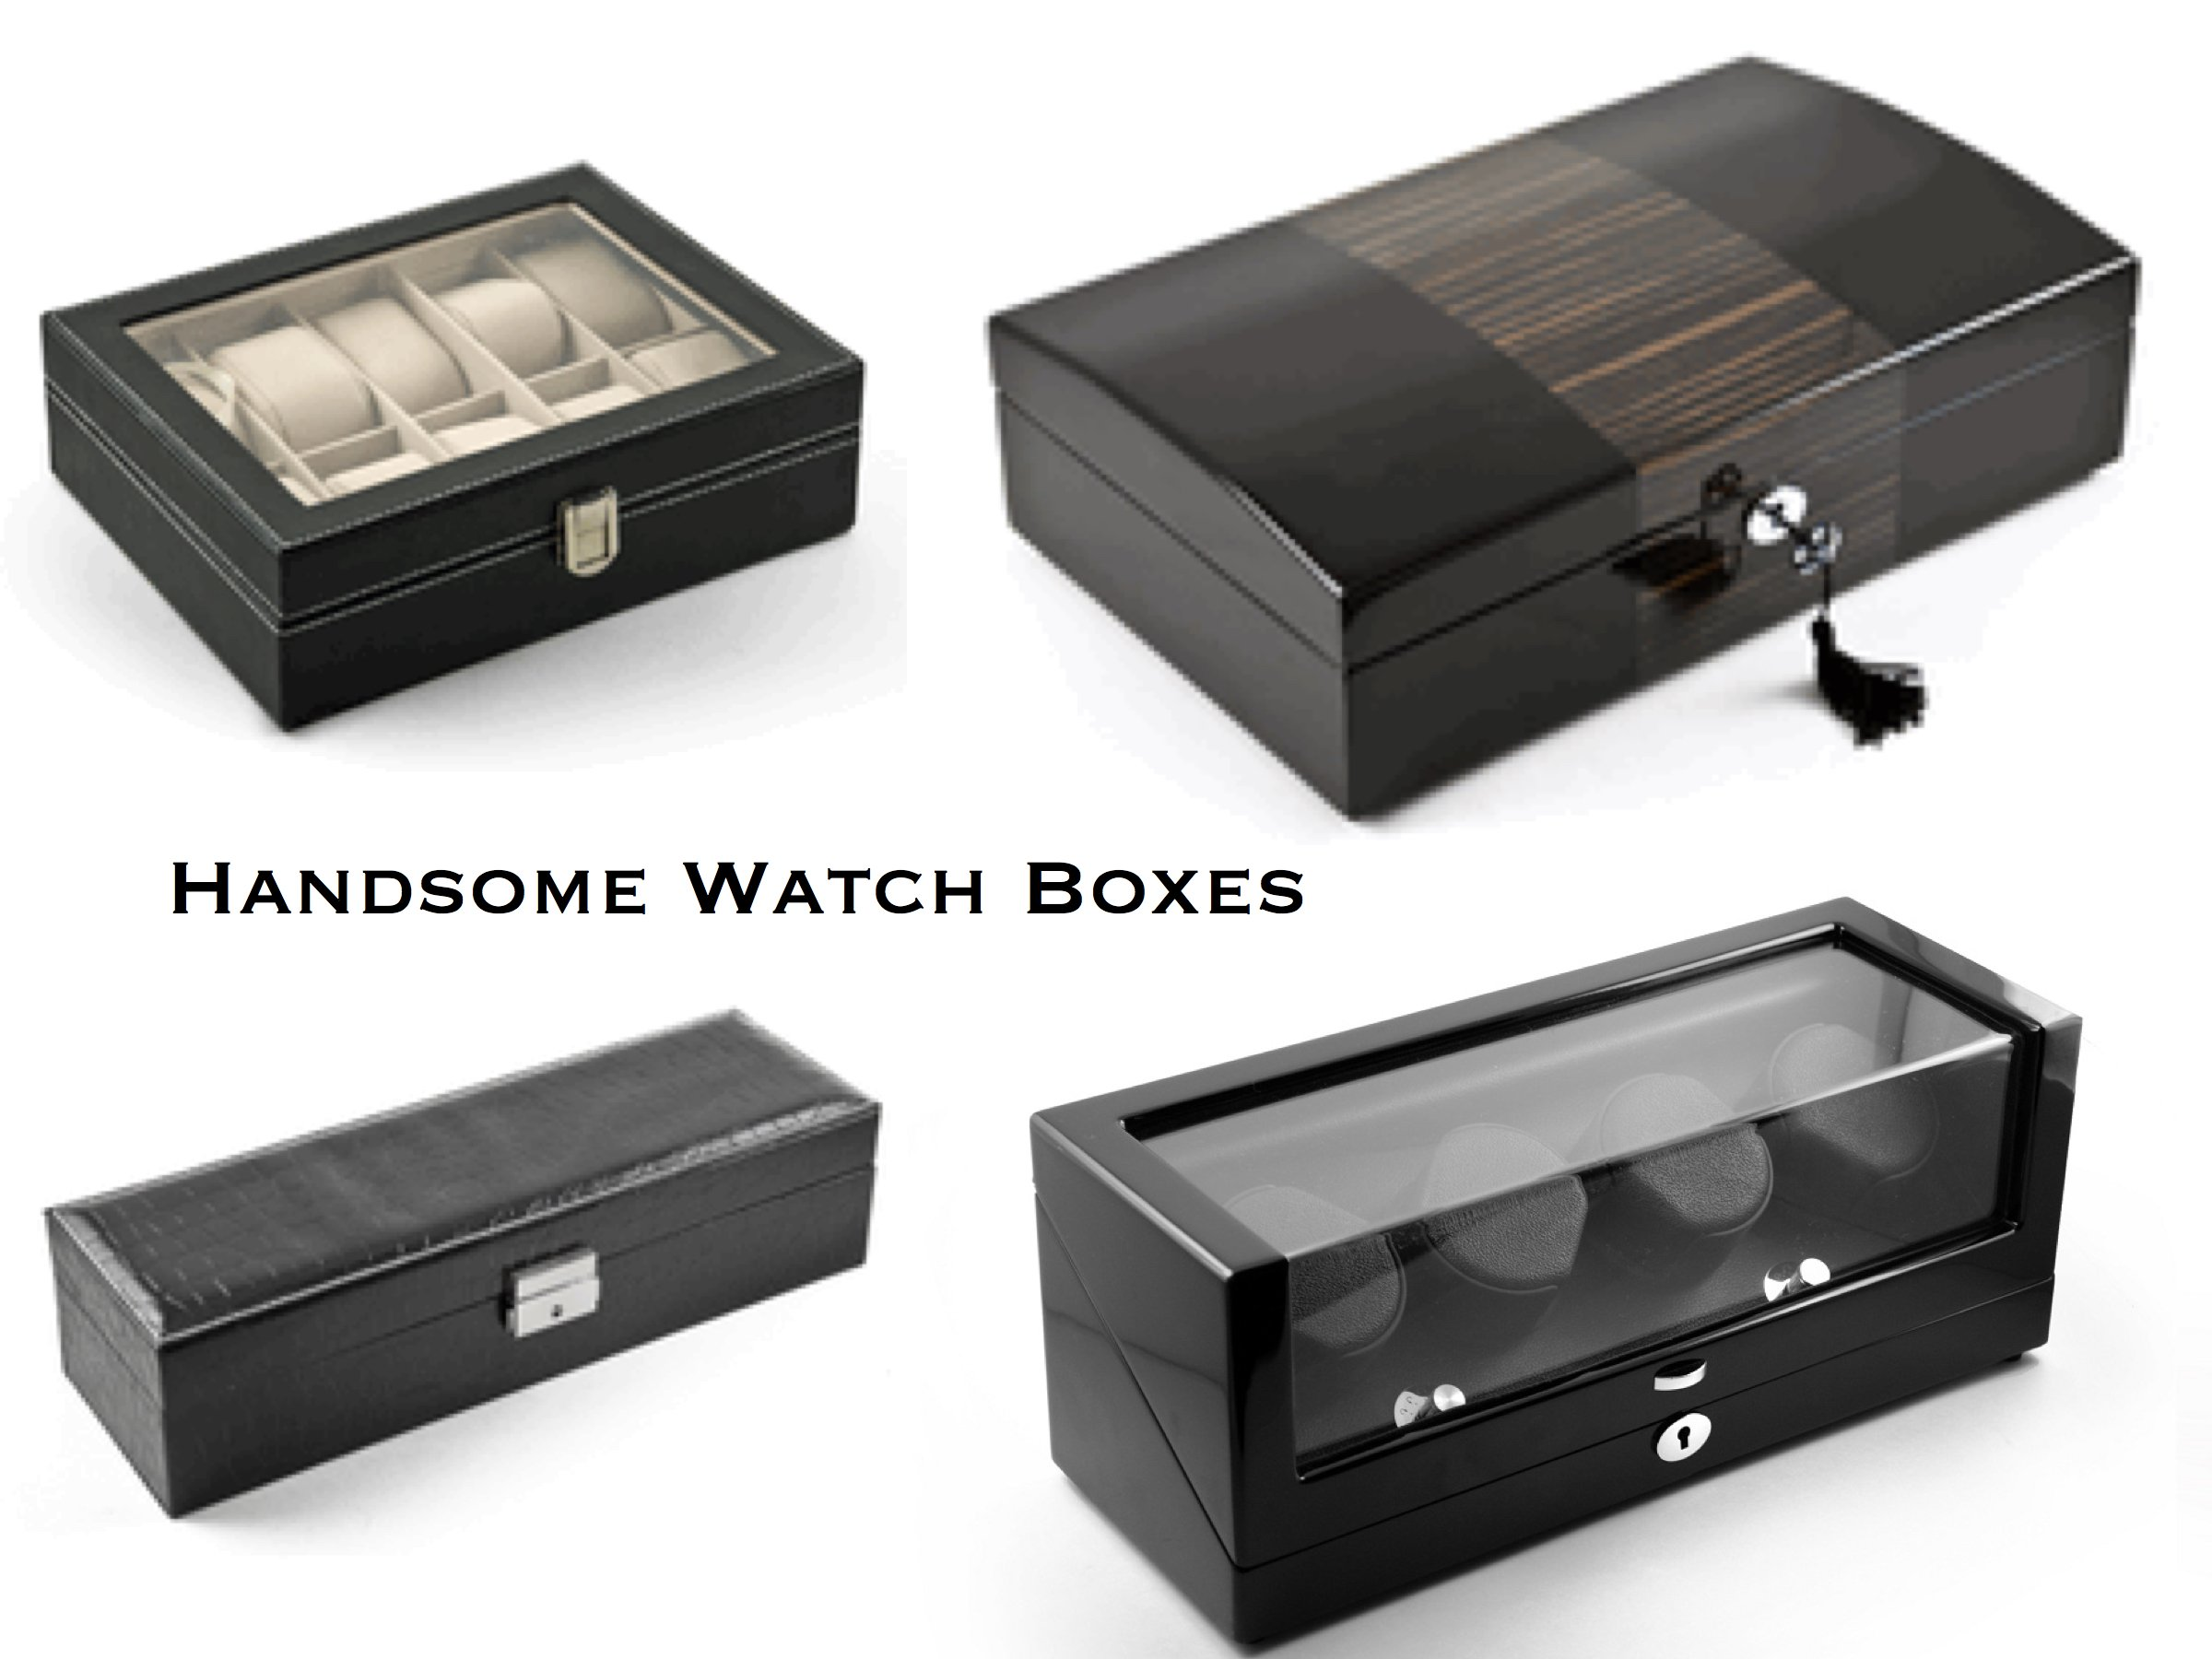 Handsome Watch Boxes